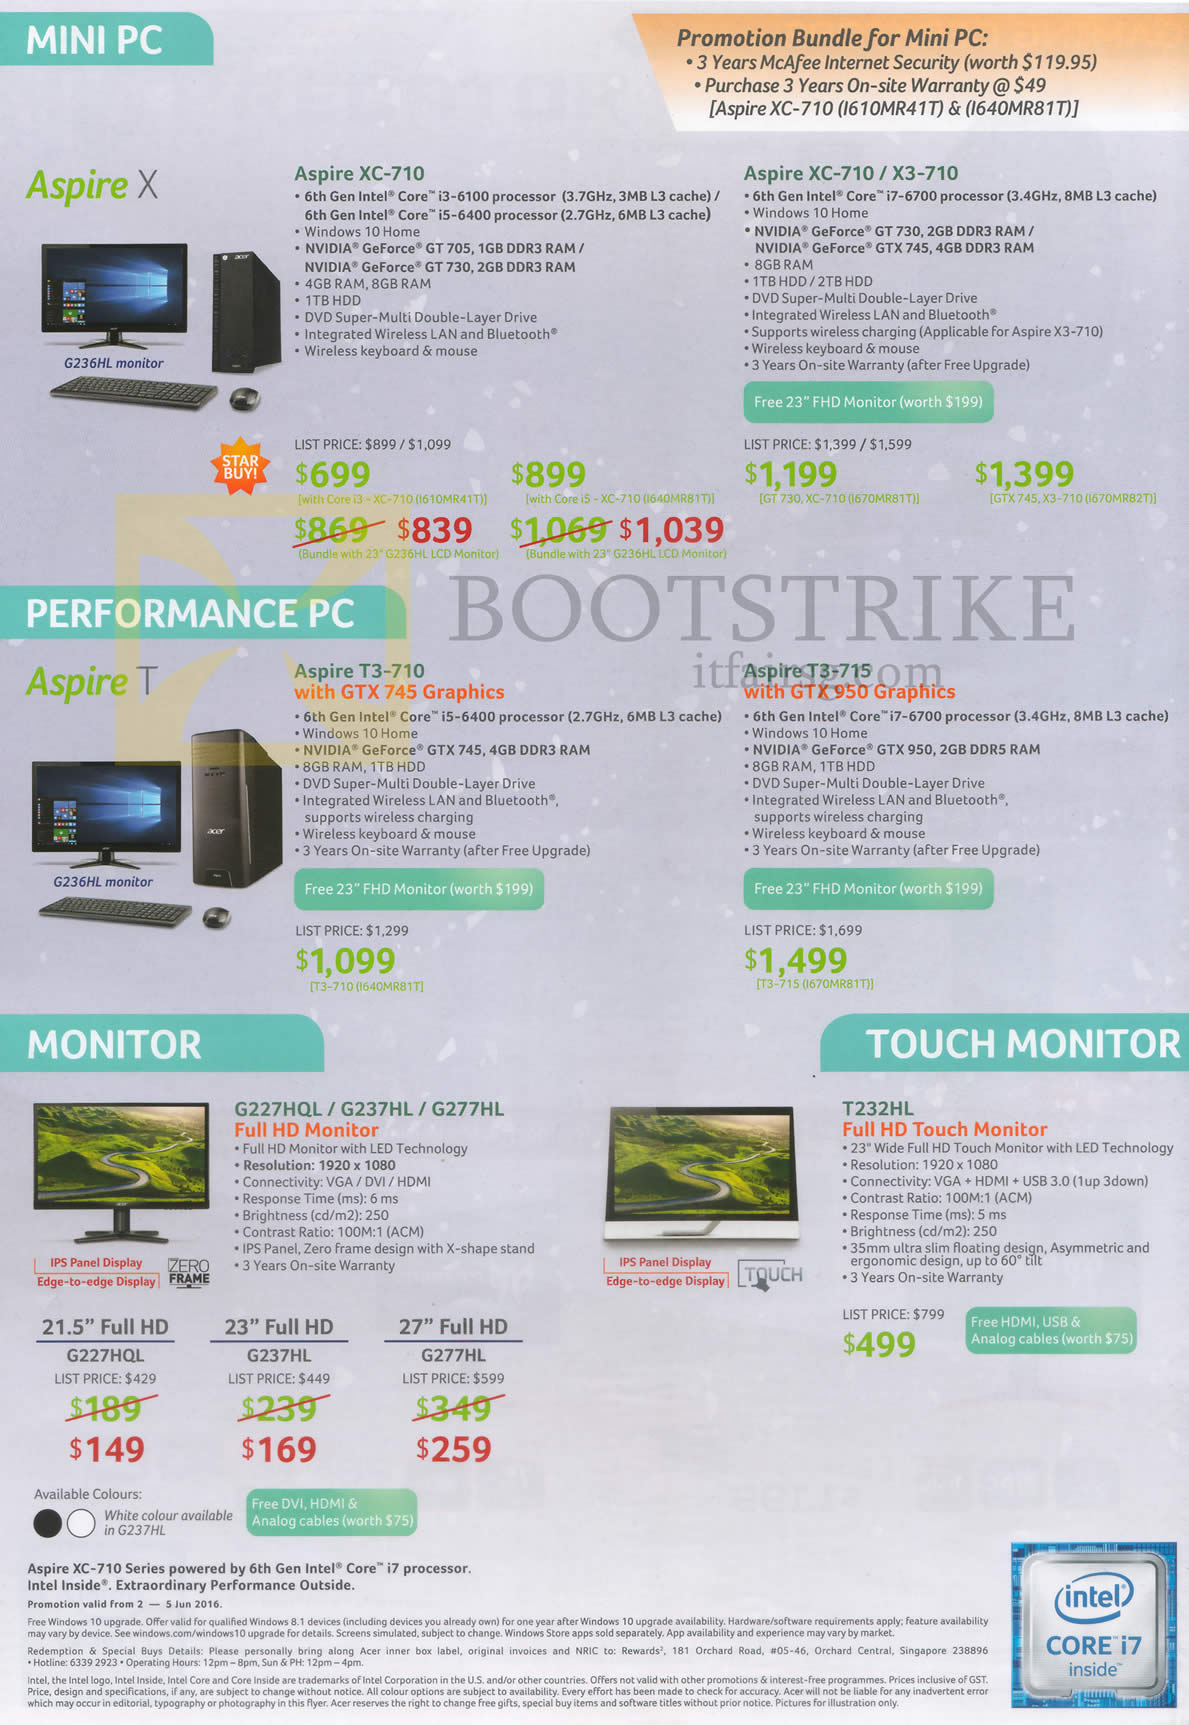 PC SHOW 2016 price list image brochure of Acer Notebooks, Monitors, Aspire XC-710, X3-710, T3-710, T3-715, G227HQL, G237HL, G277HL, T232HL